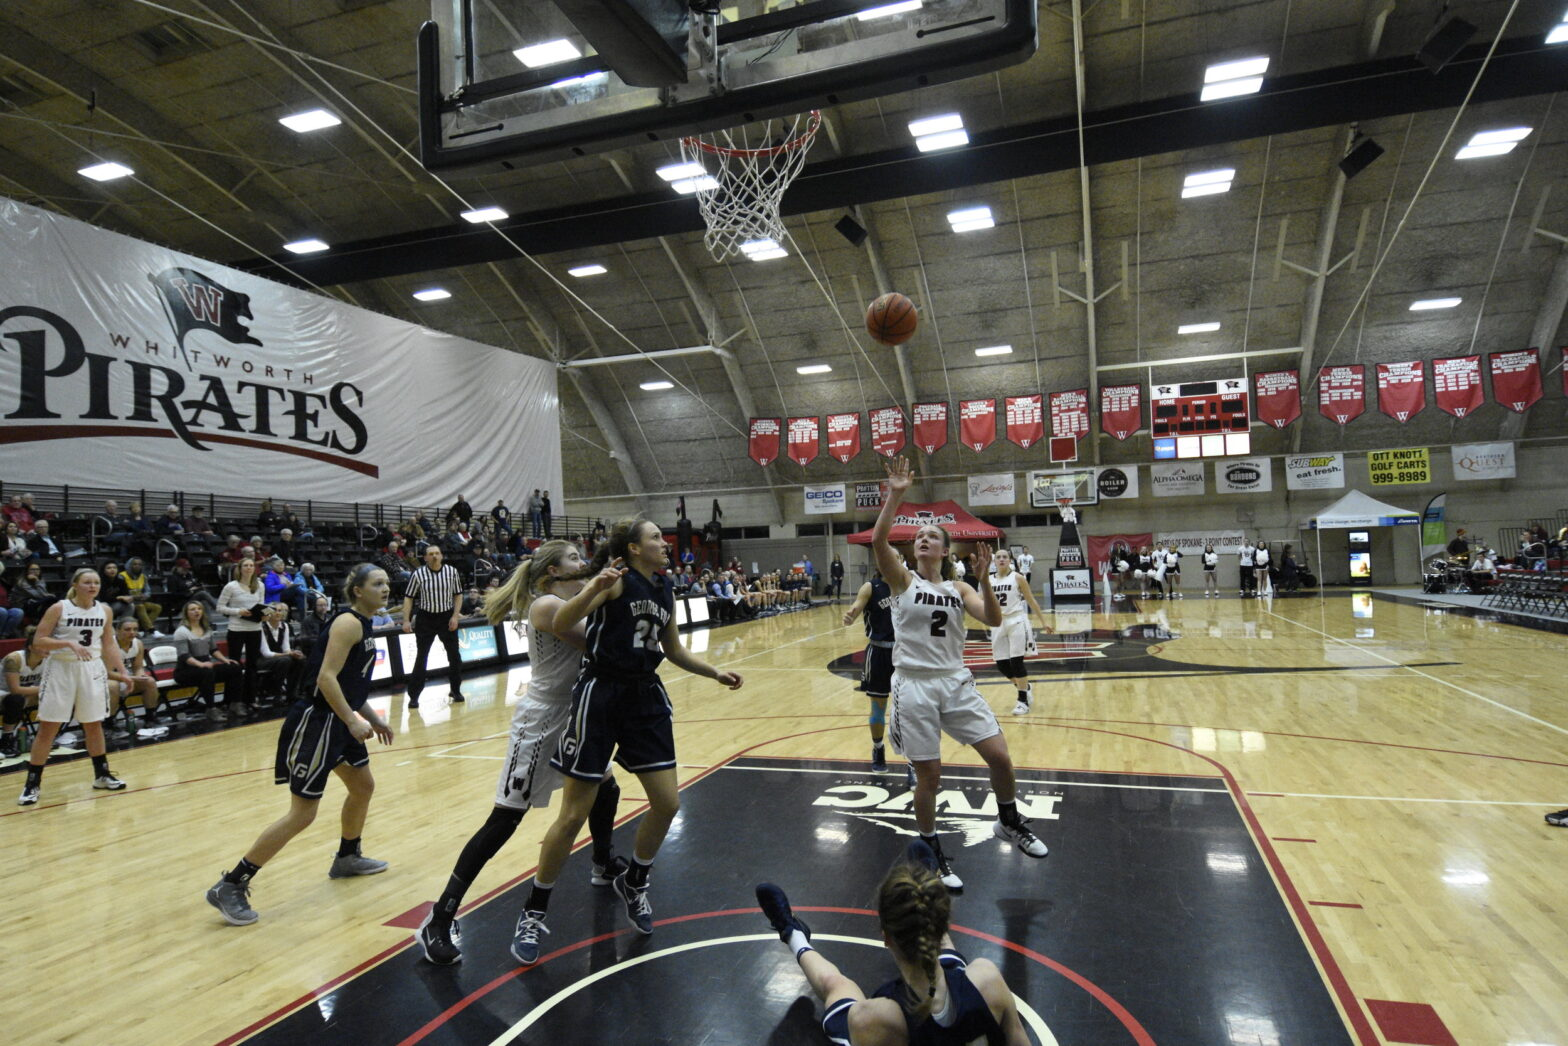 Women's basketball team flies to every away game for the first time in the team's history